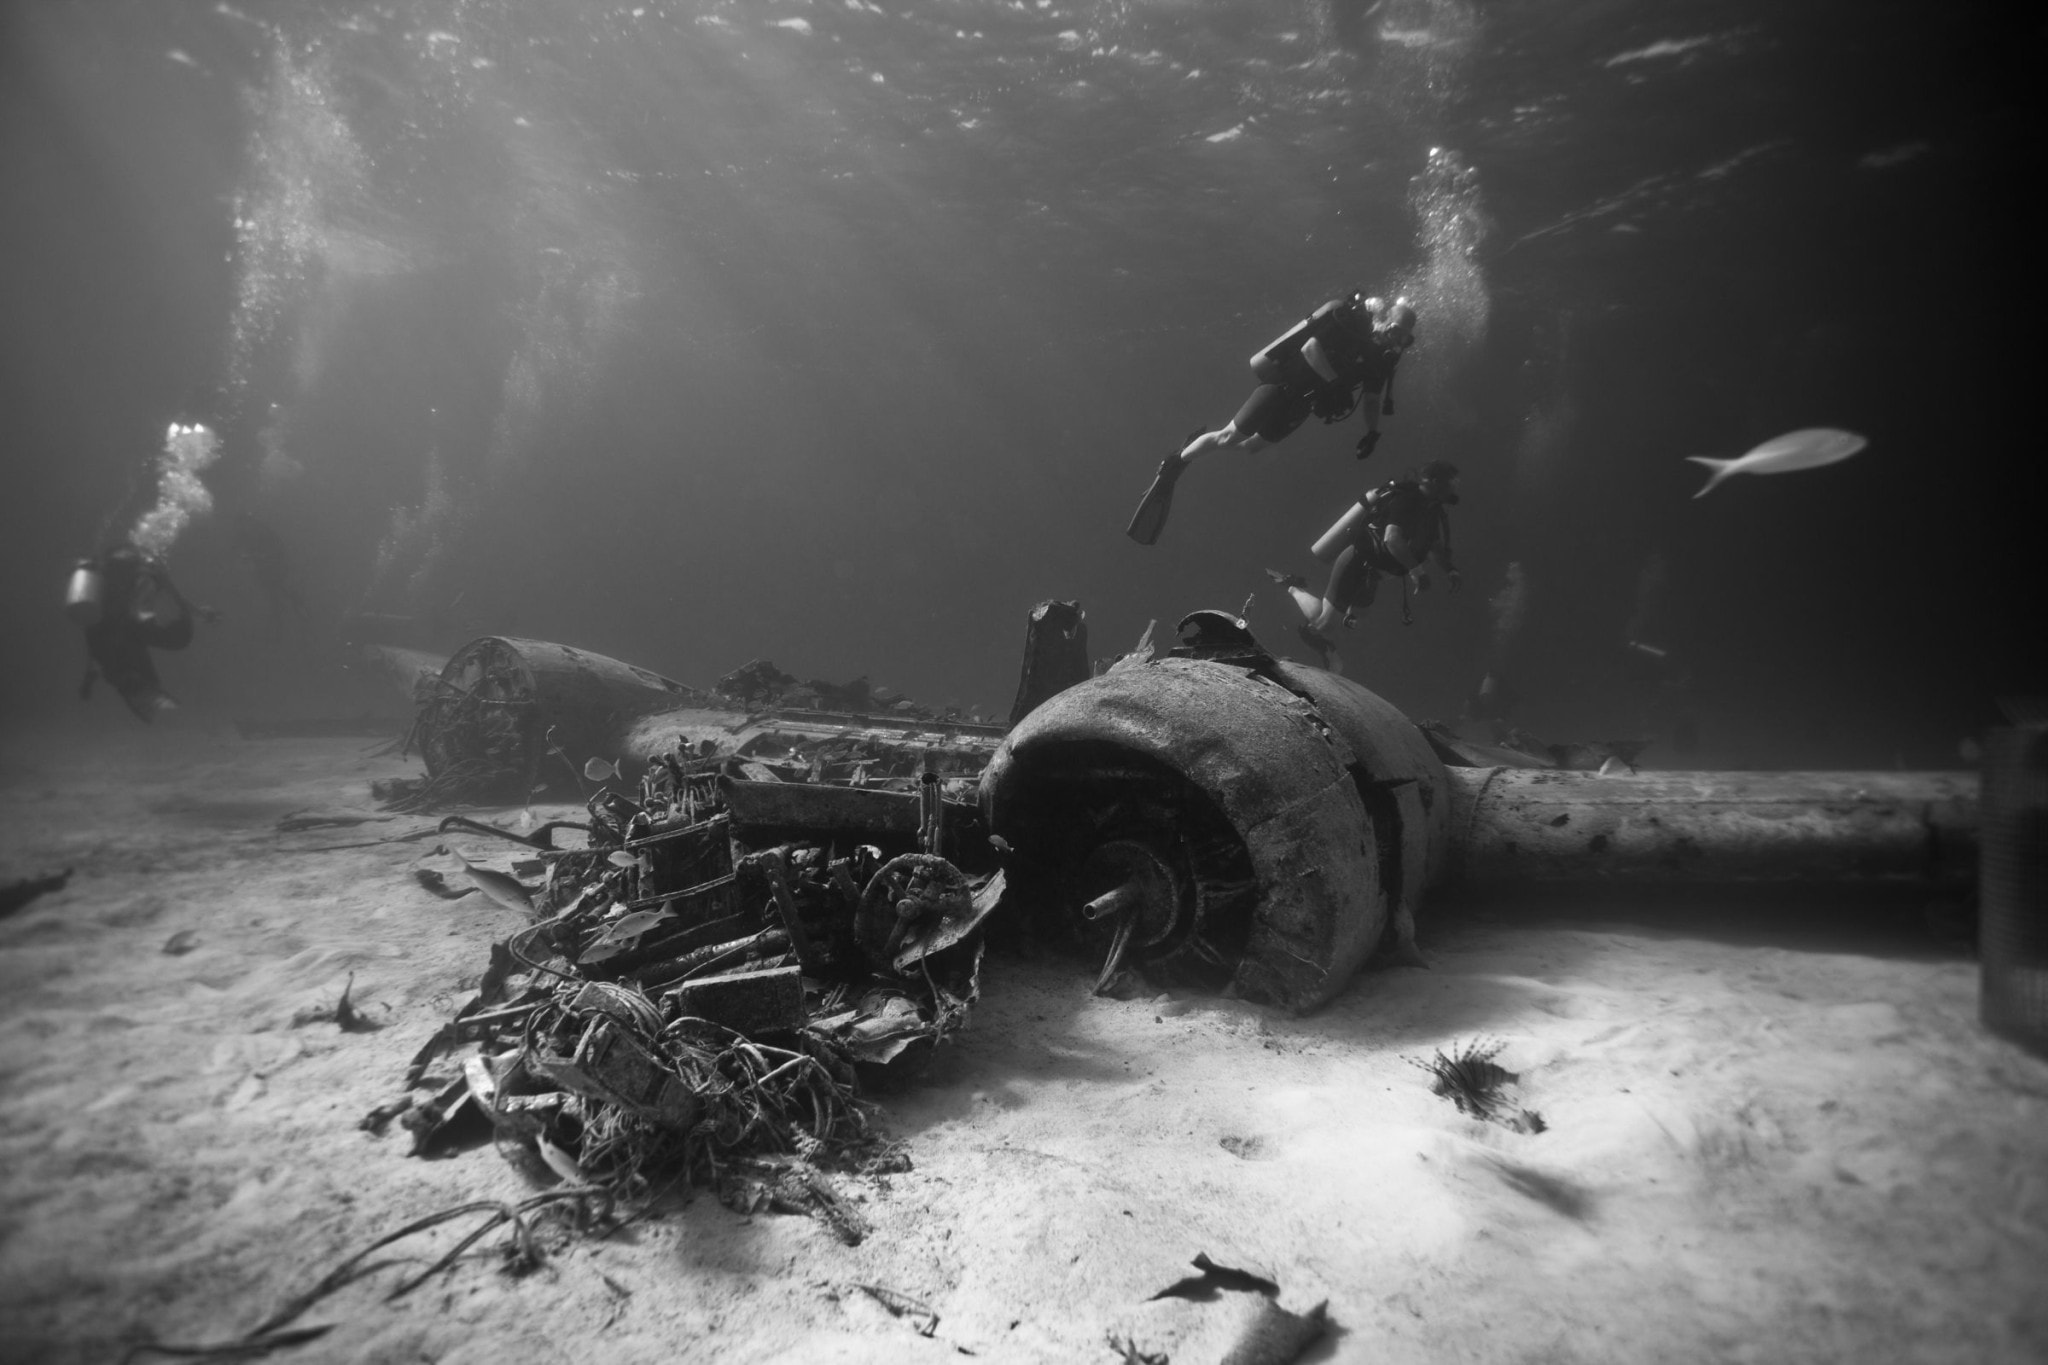 Smuggler's Plane Wreck Off Norman's Cay, The Bahamas: Uncommon Attraction